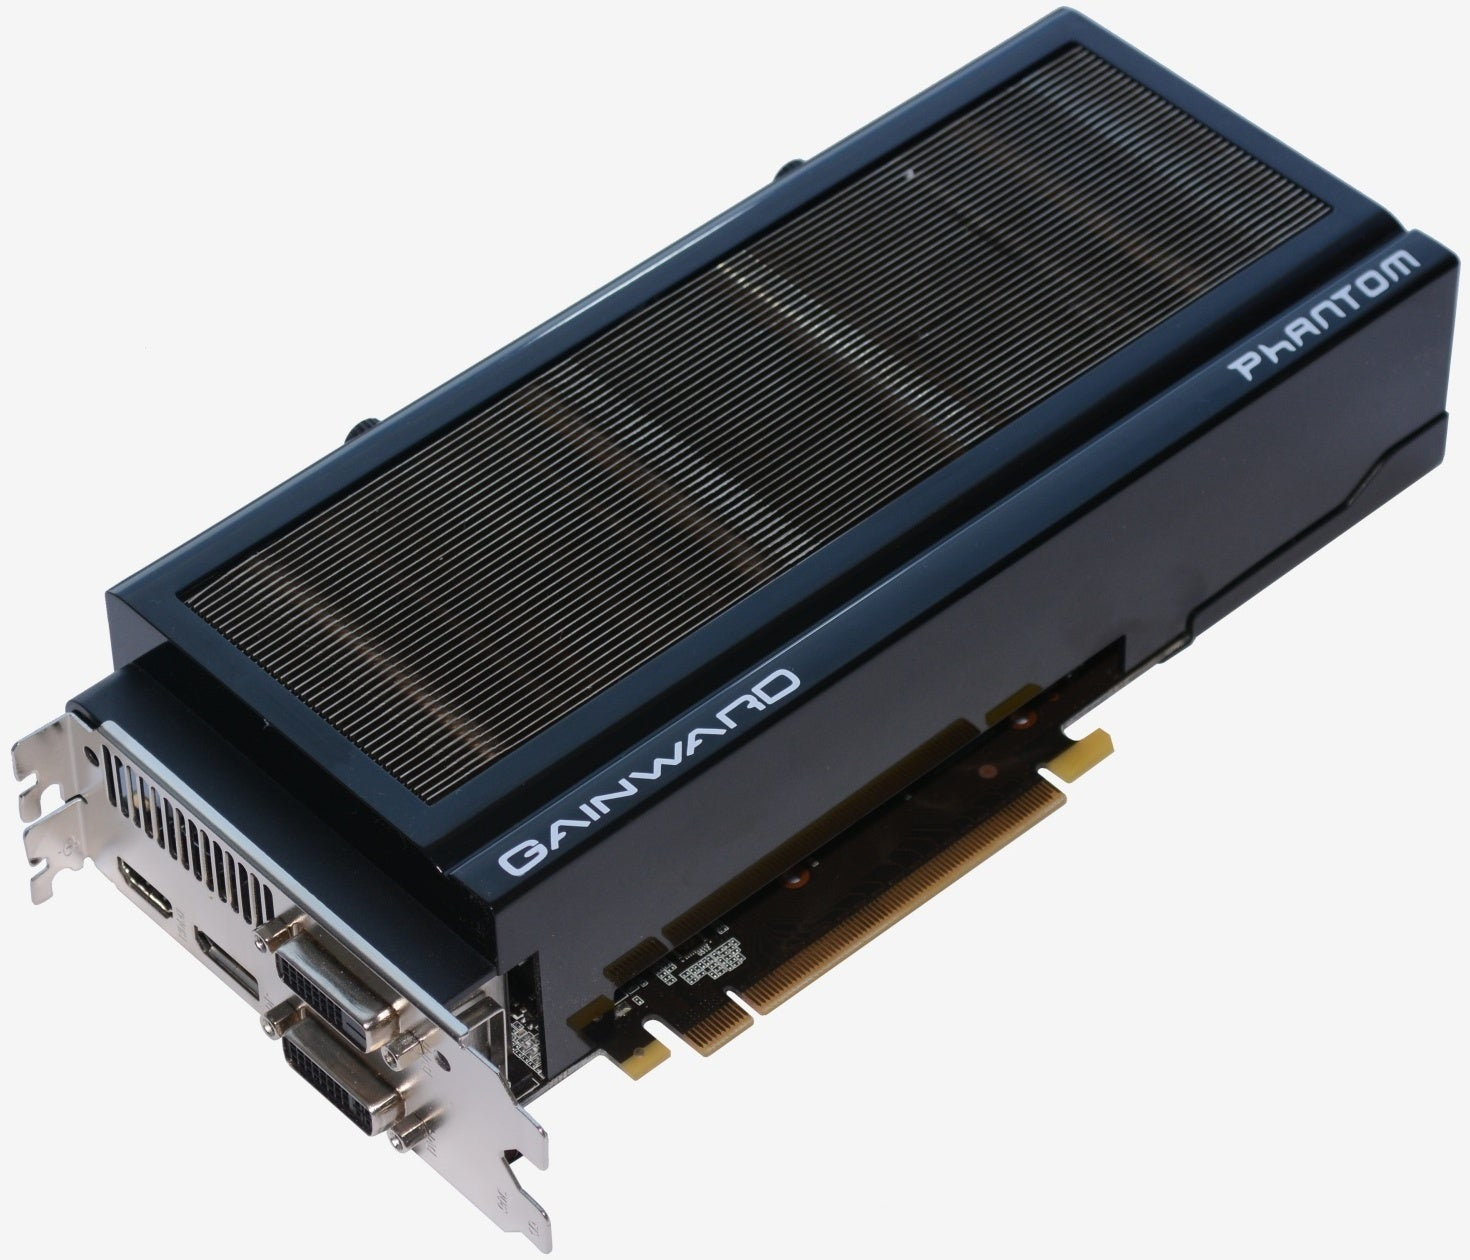 Those factors have made the gtx 970 an obvious pick for many but at